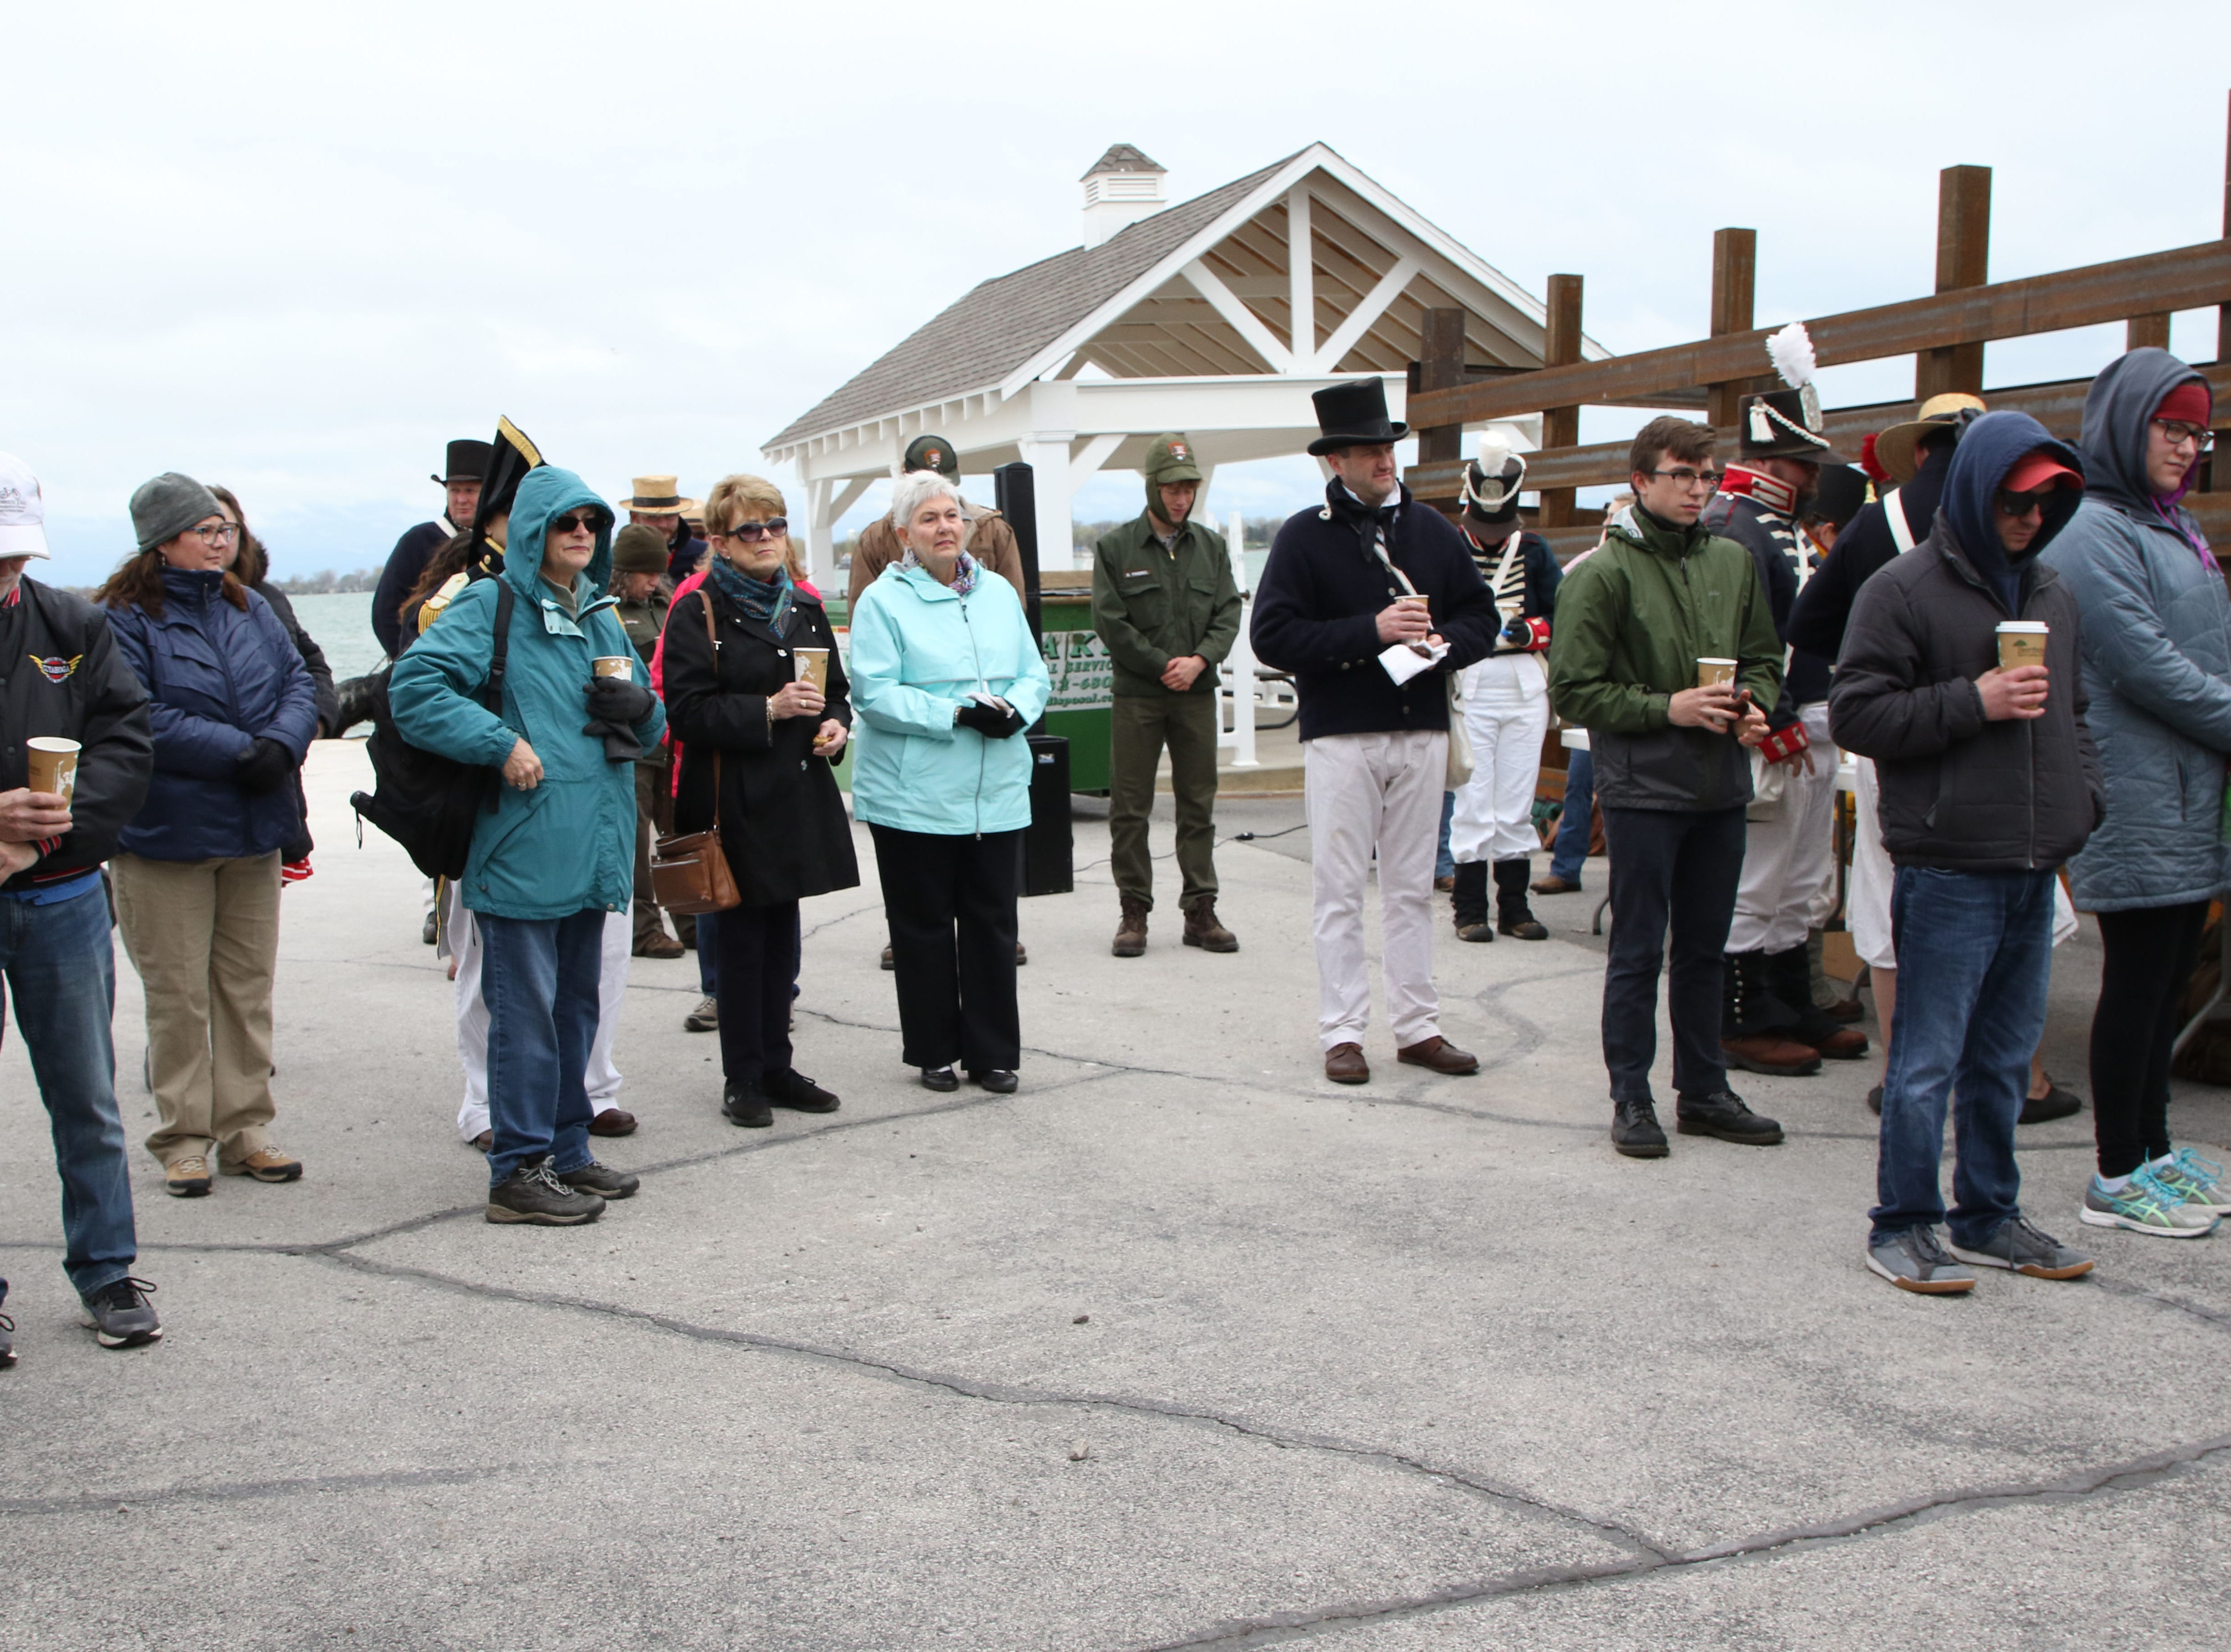 Clergy from three South Bass Island churches performed a Blessing of the Fleet ceremony at Fox's Dock at Put-in-Bay on Tuesday, praying for safety of the vessels that serve the Lake Erie islands.